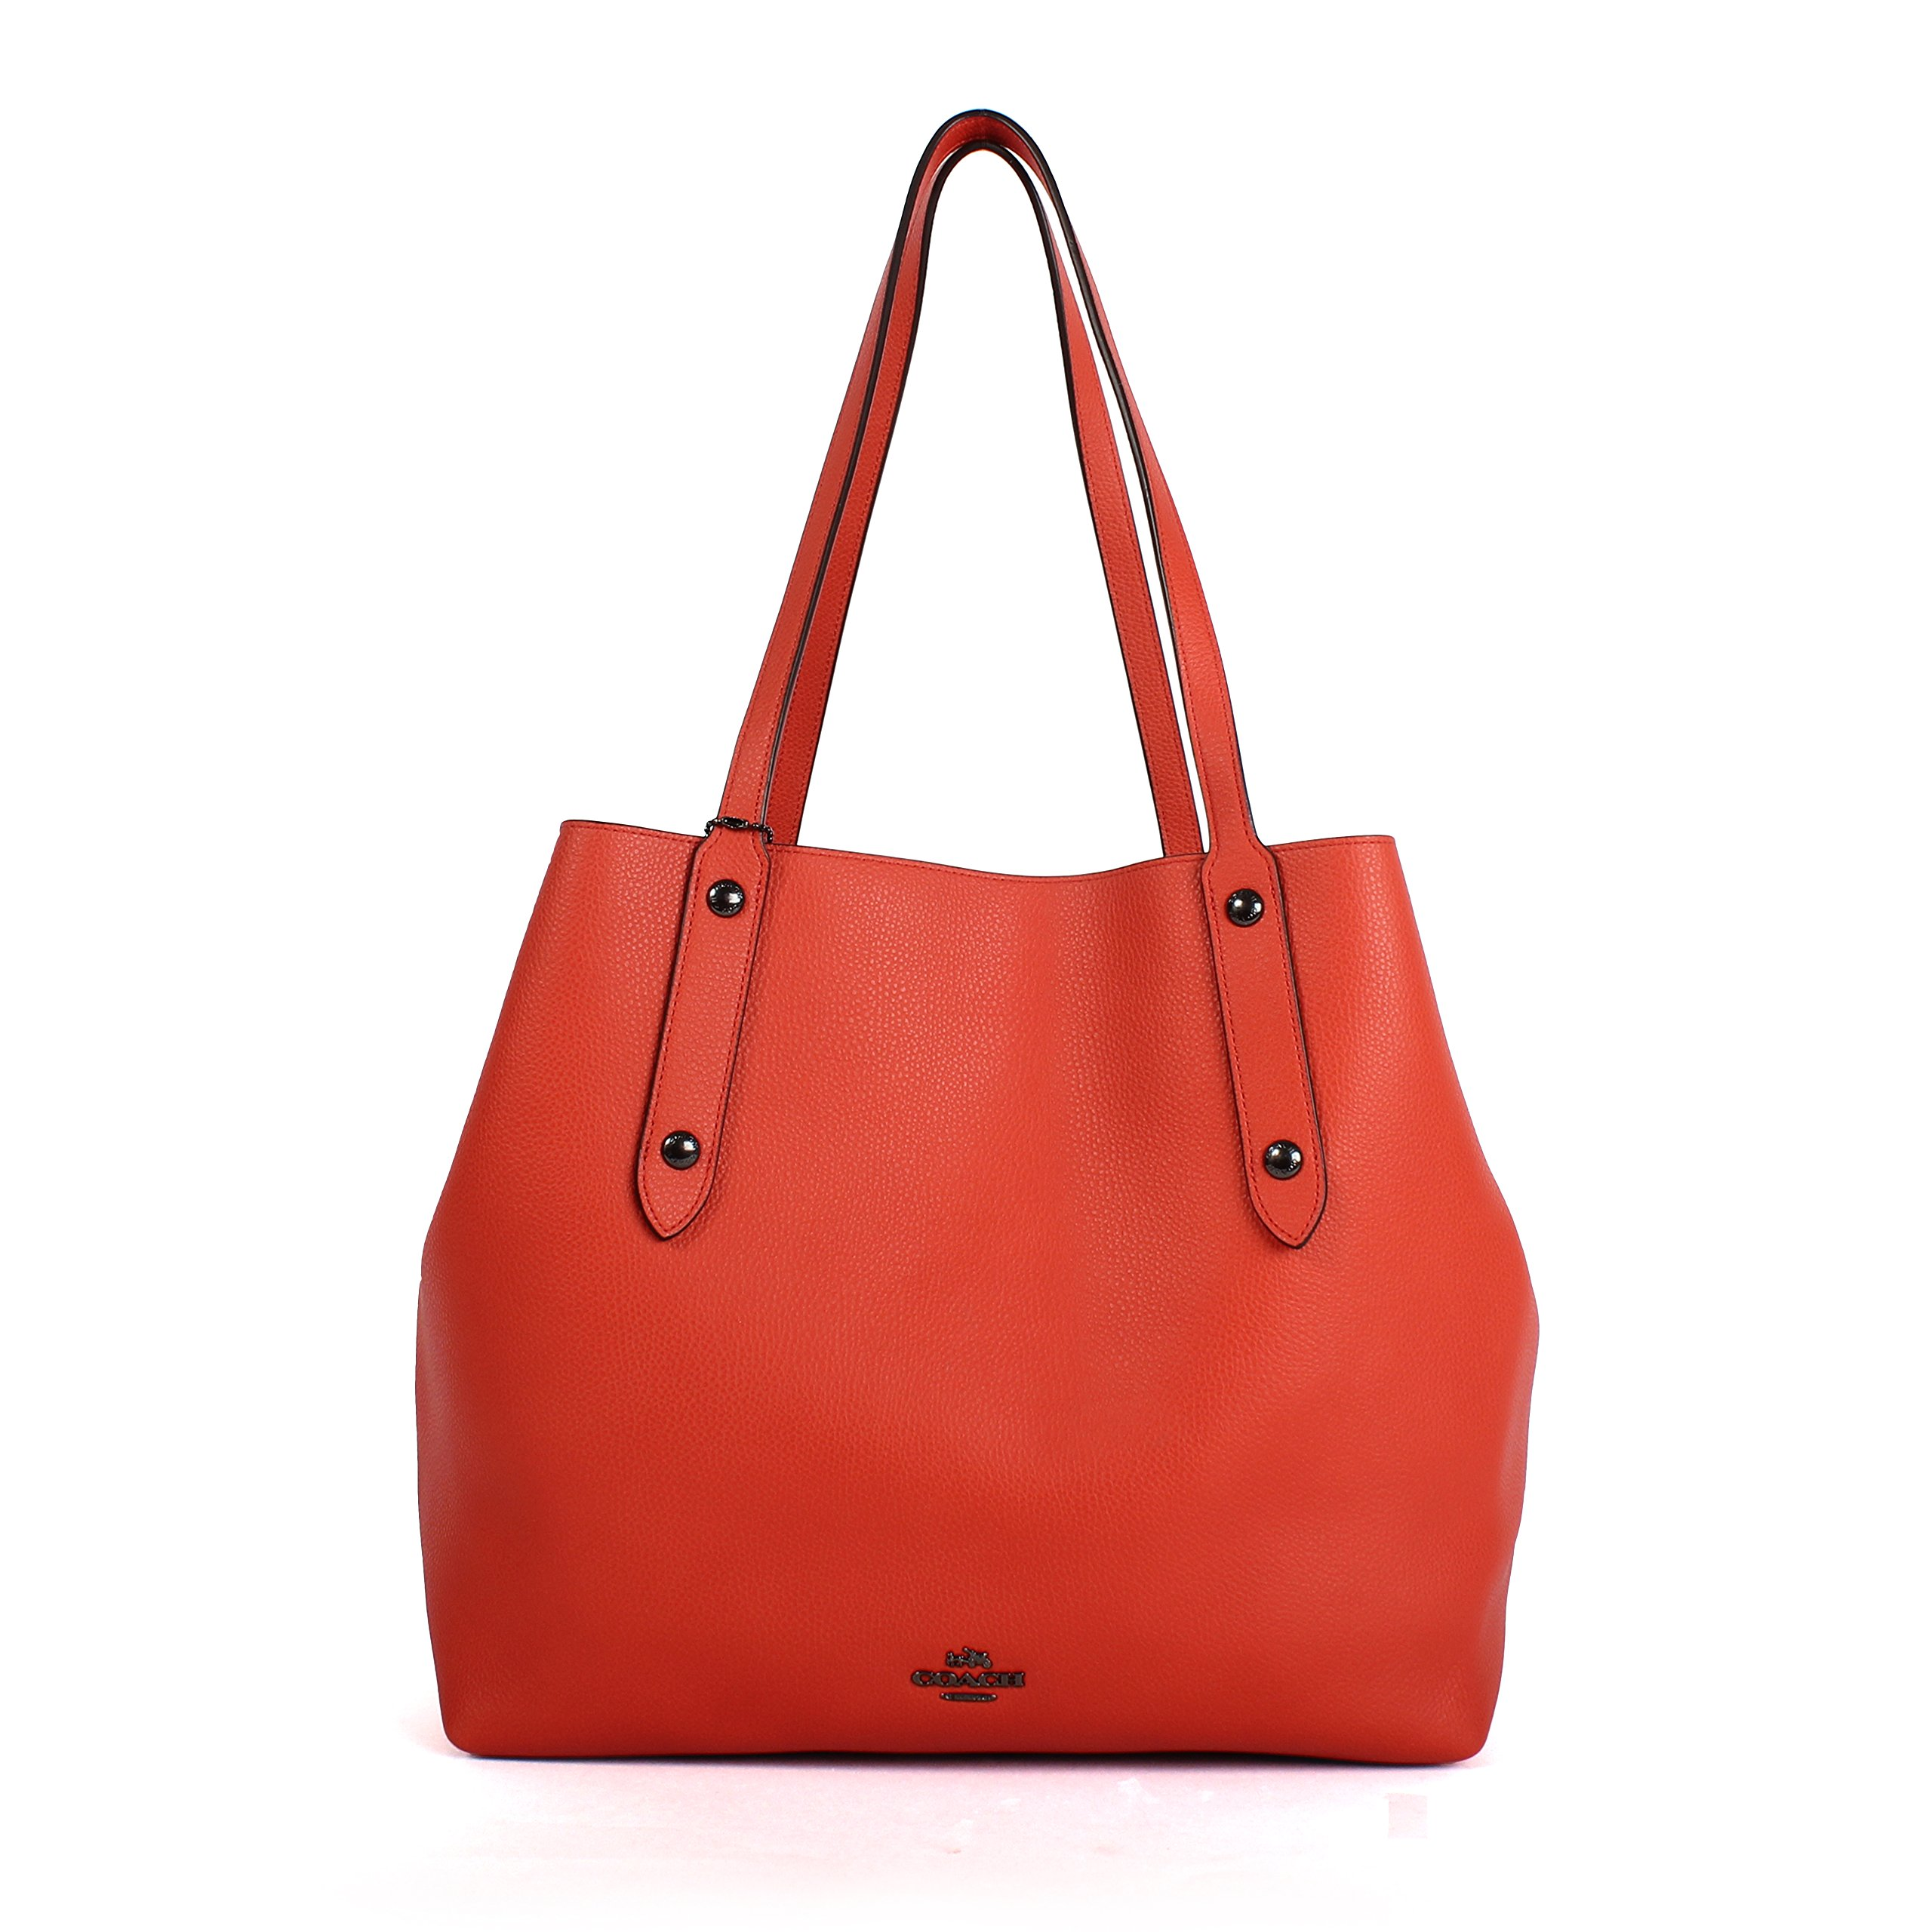 Coach Large Orange Market Tote in Printed Pebble Leather, Style NO. 58738